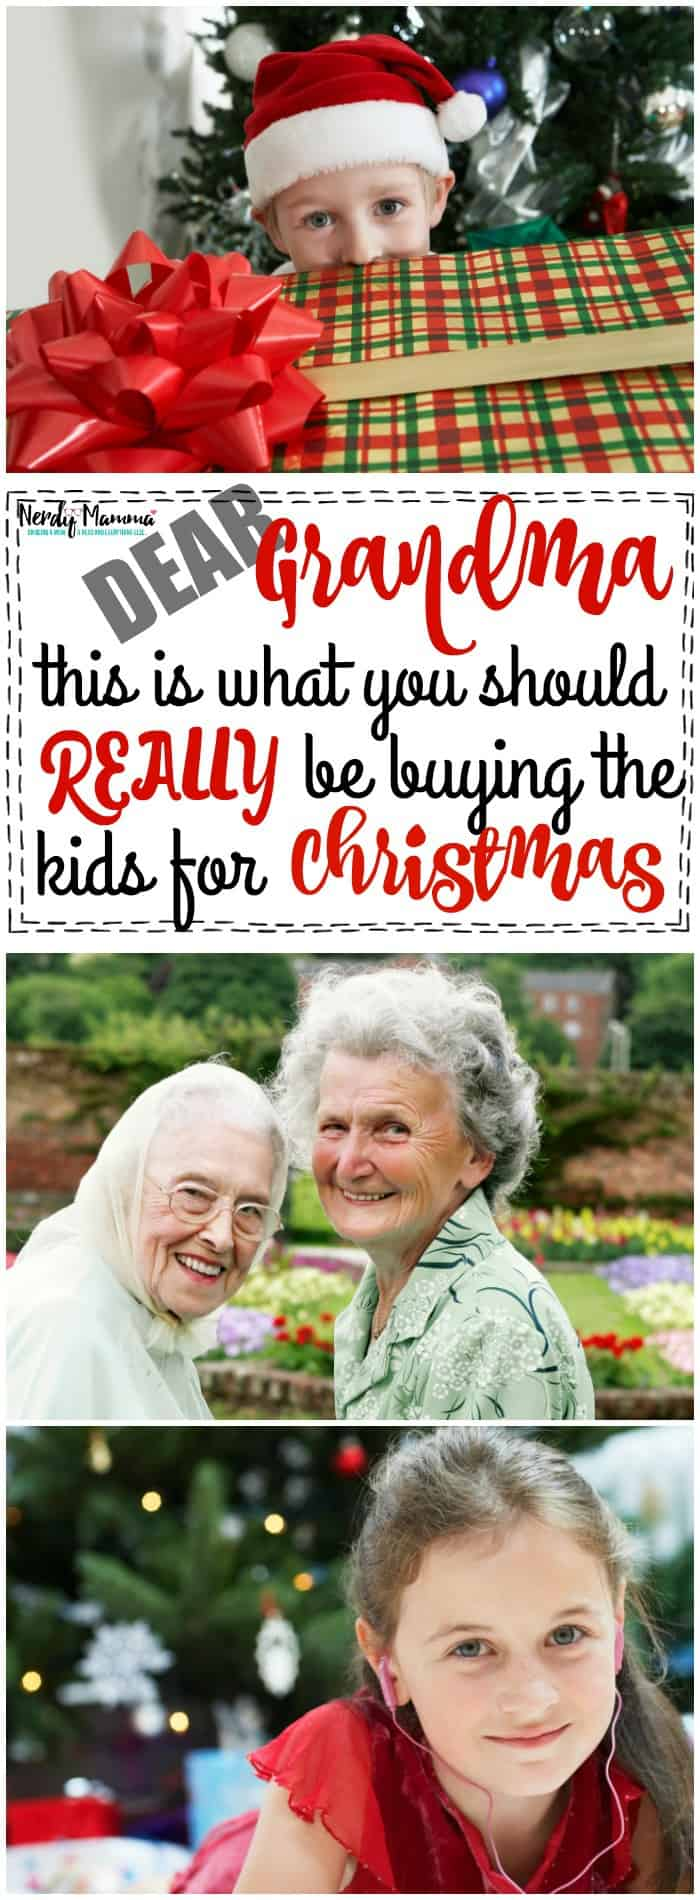 Dear Grandma This is What You Should Really Be Buying the Kids For Christmas